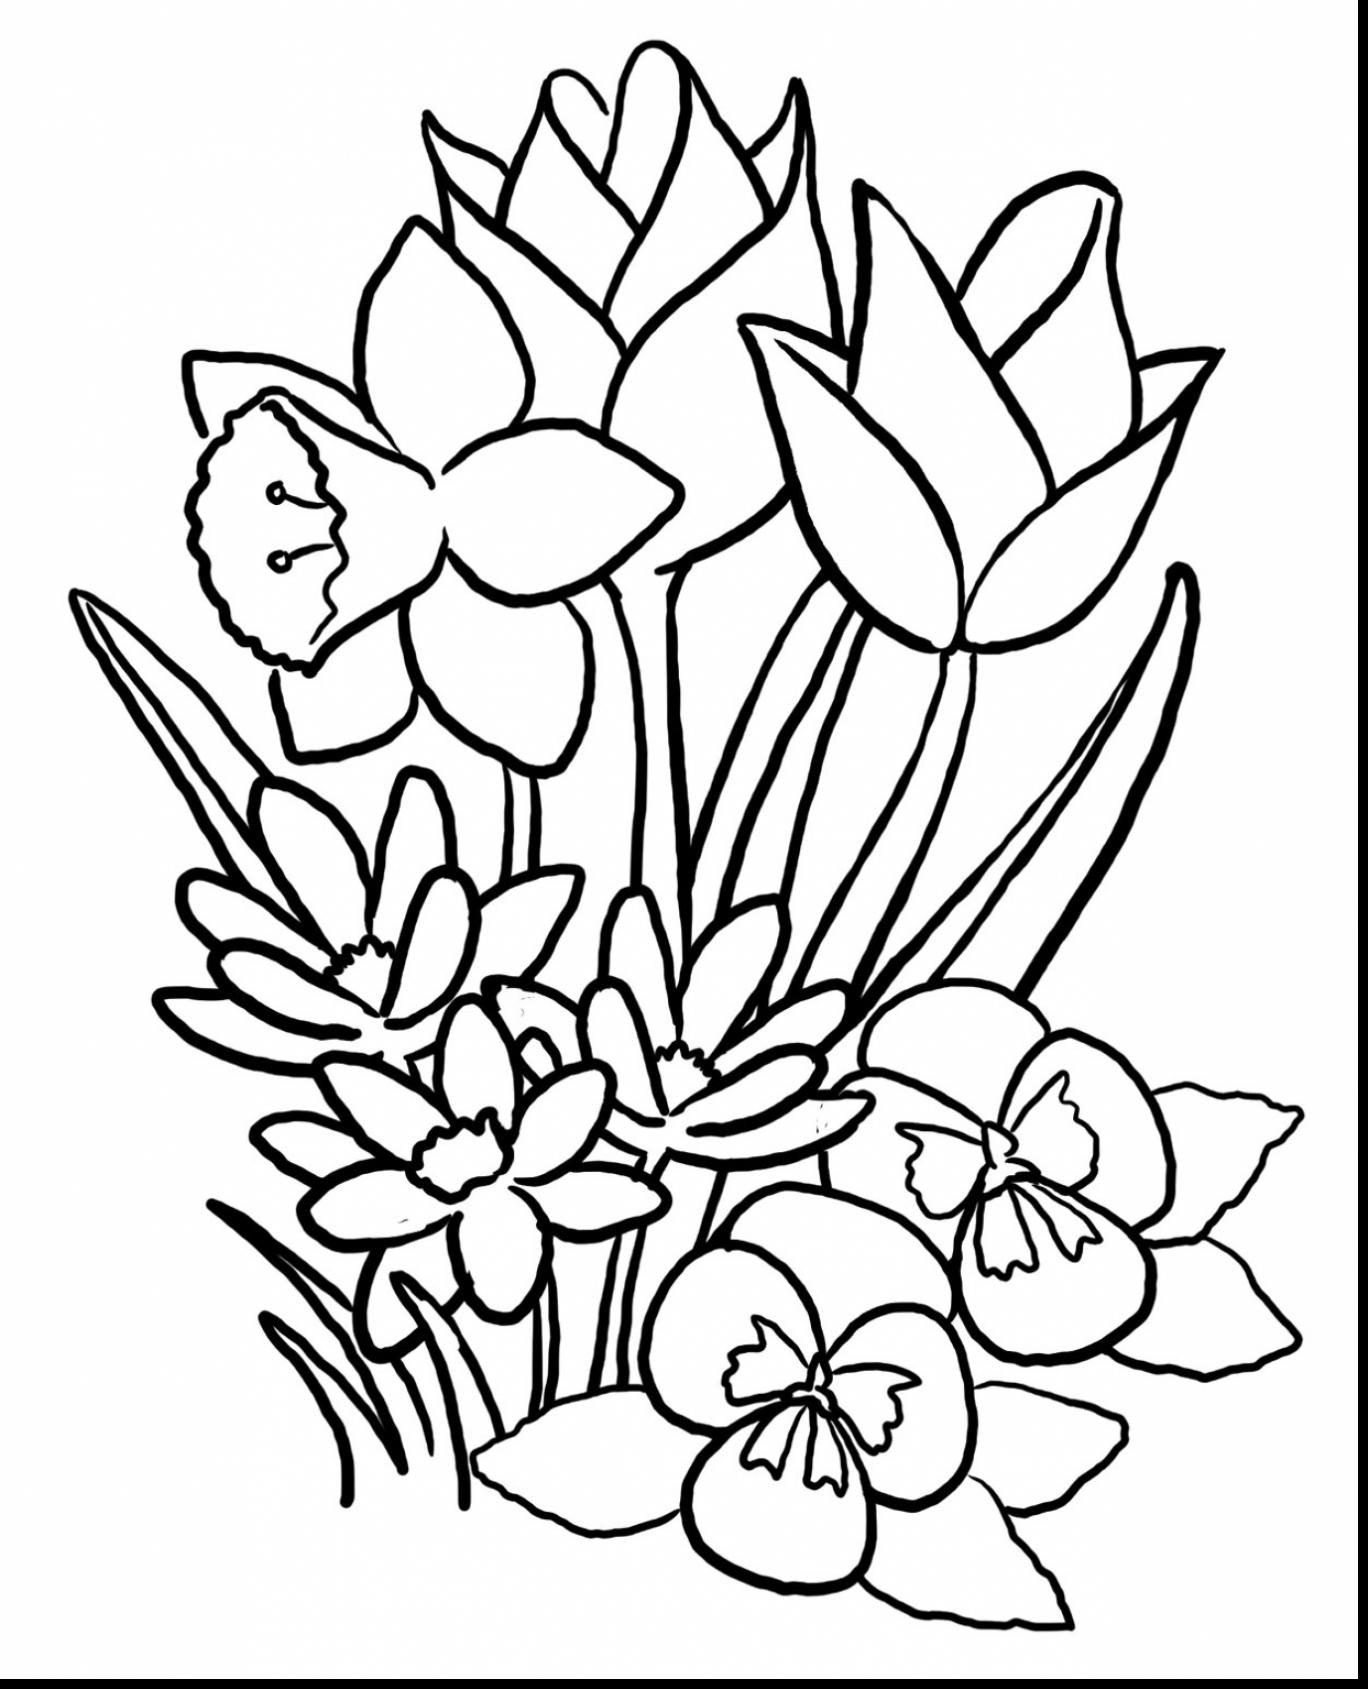 1368x1689 Surprising Spring Coloring Pages